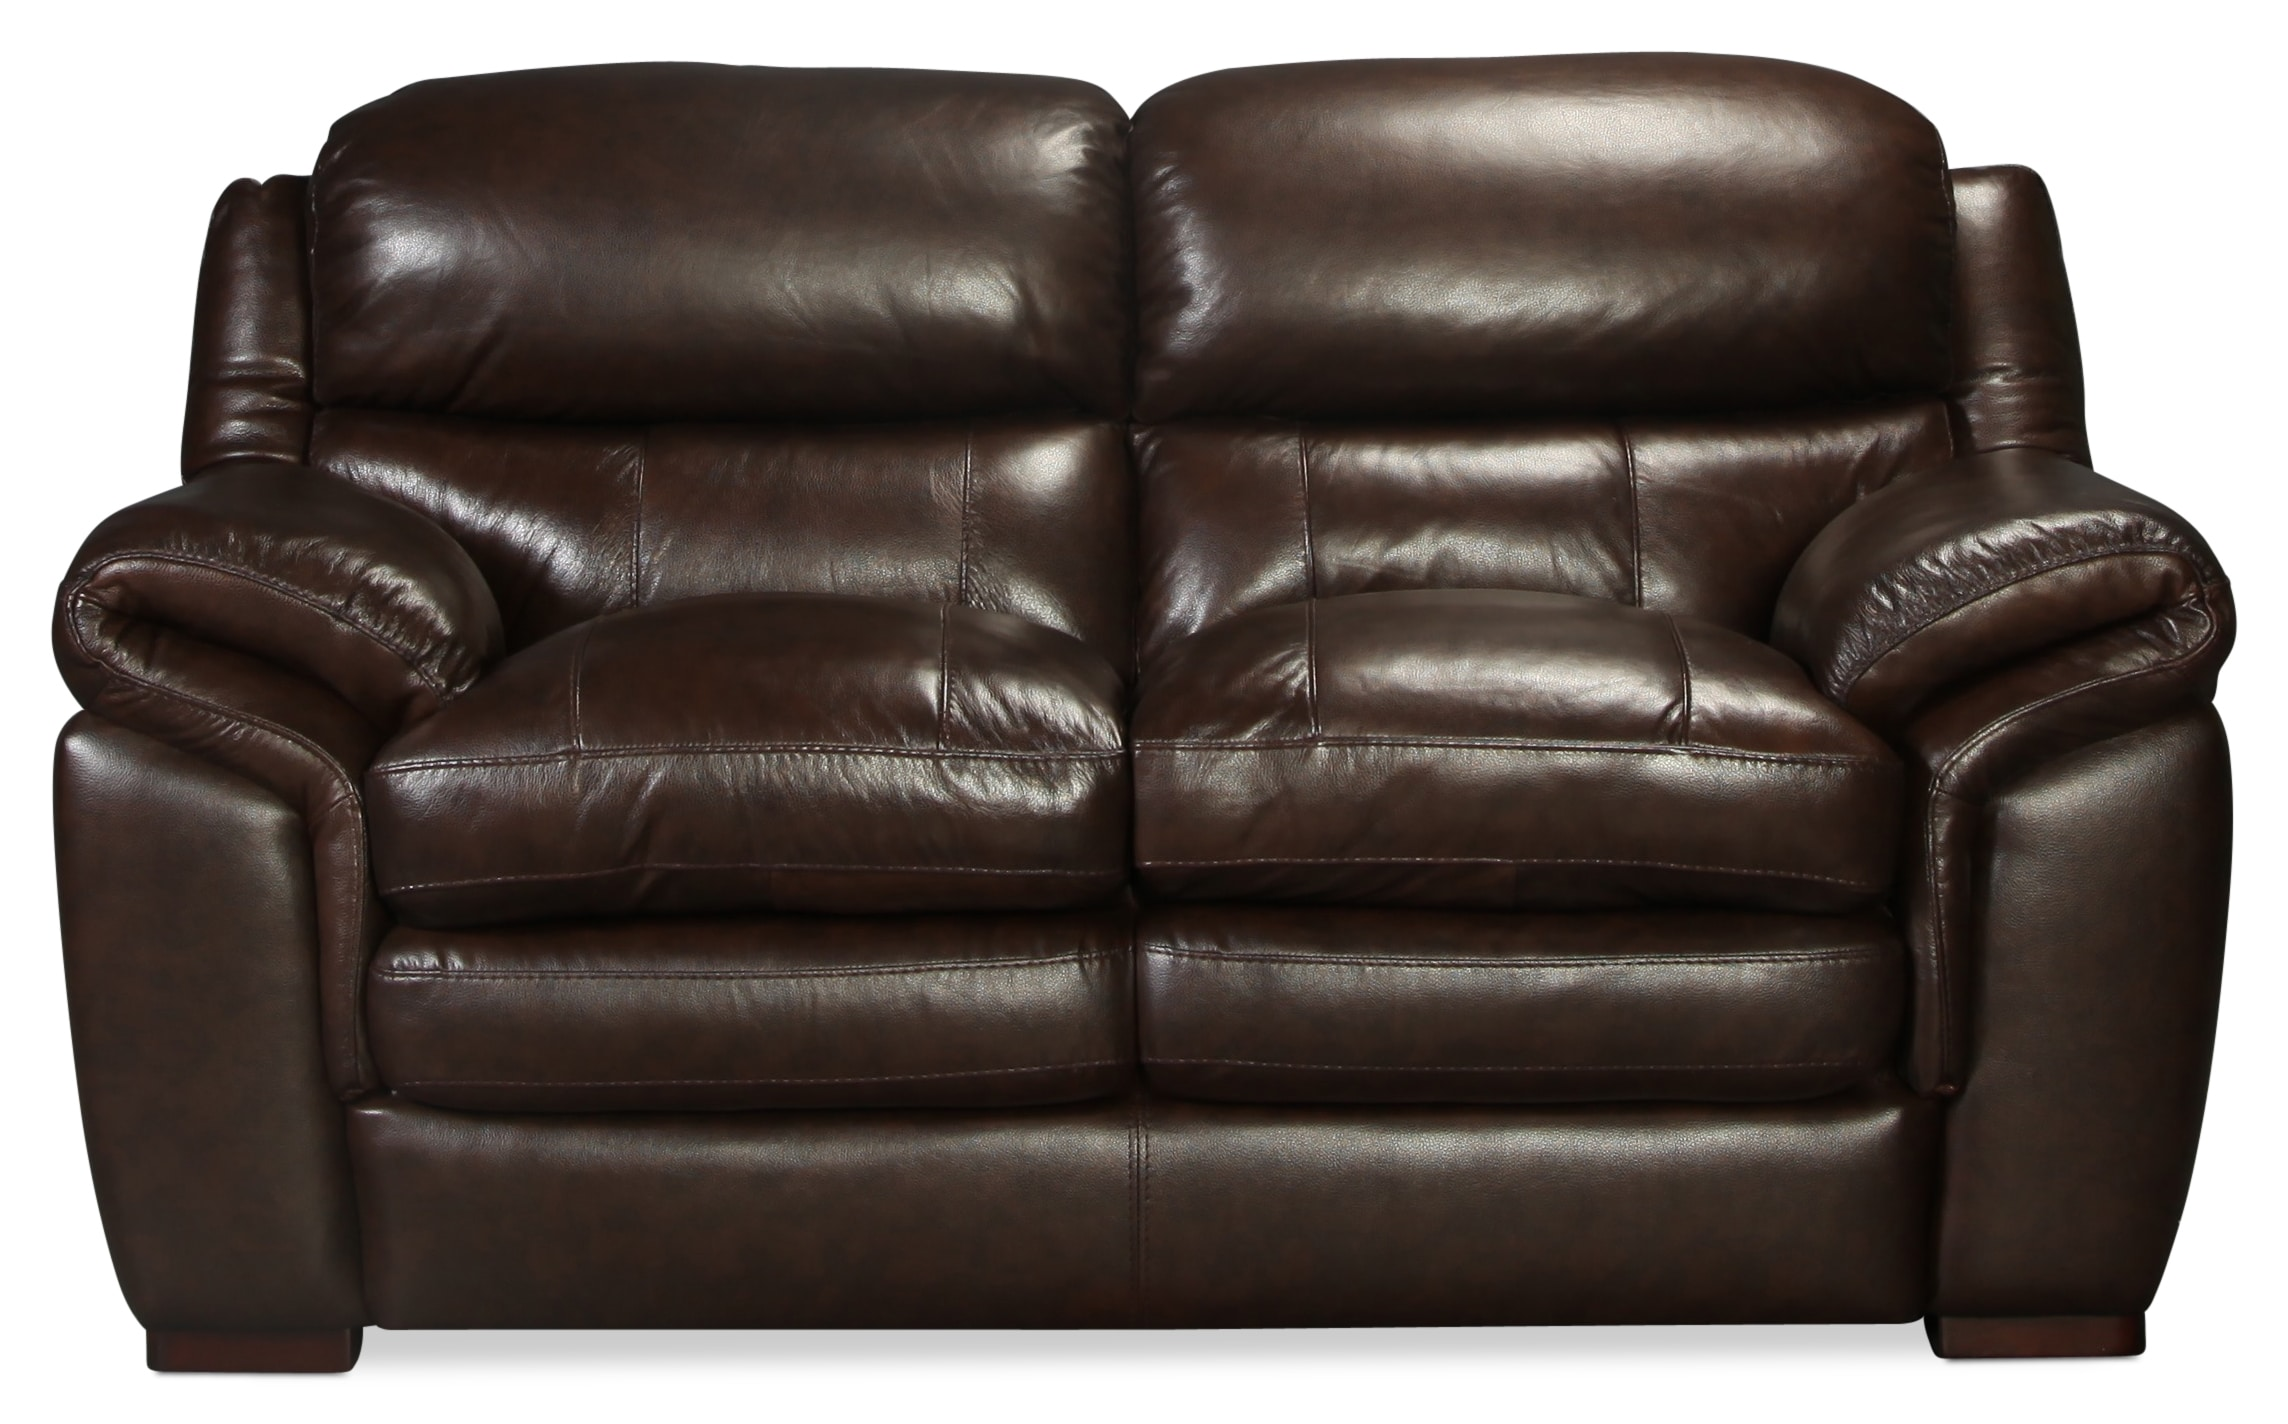 Rowan Leather Loveseat